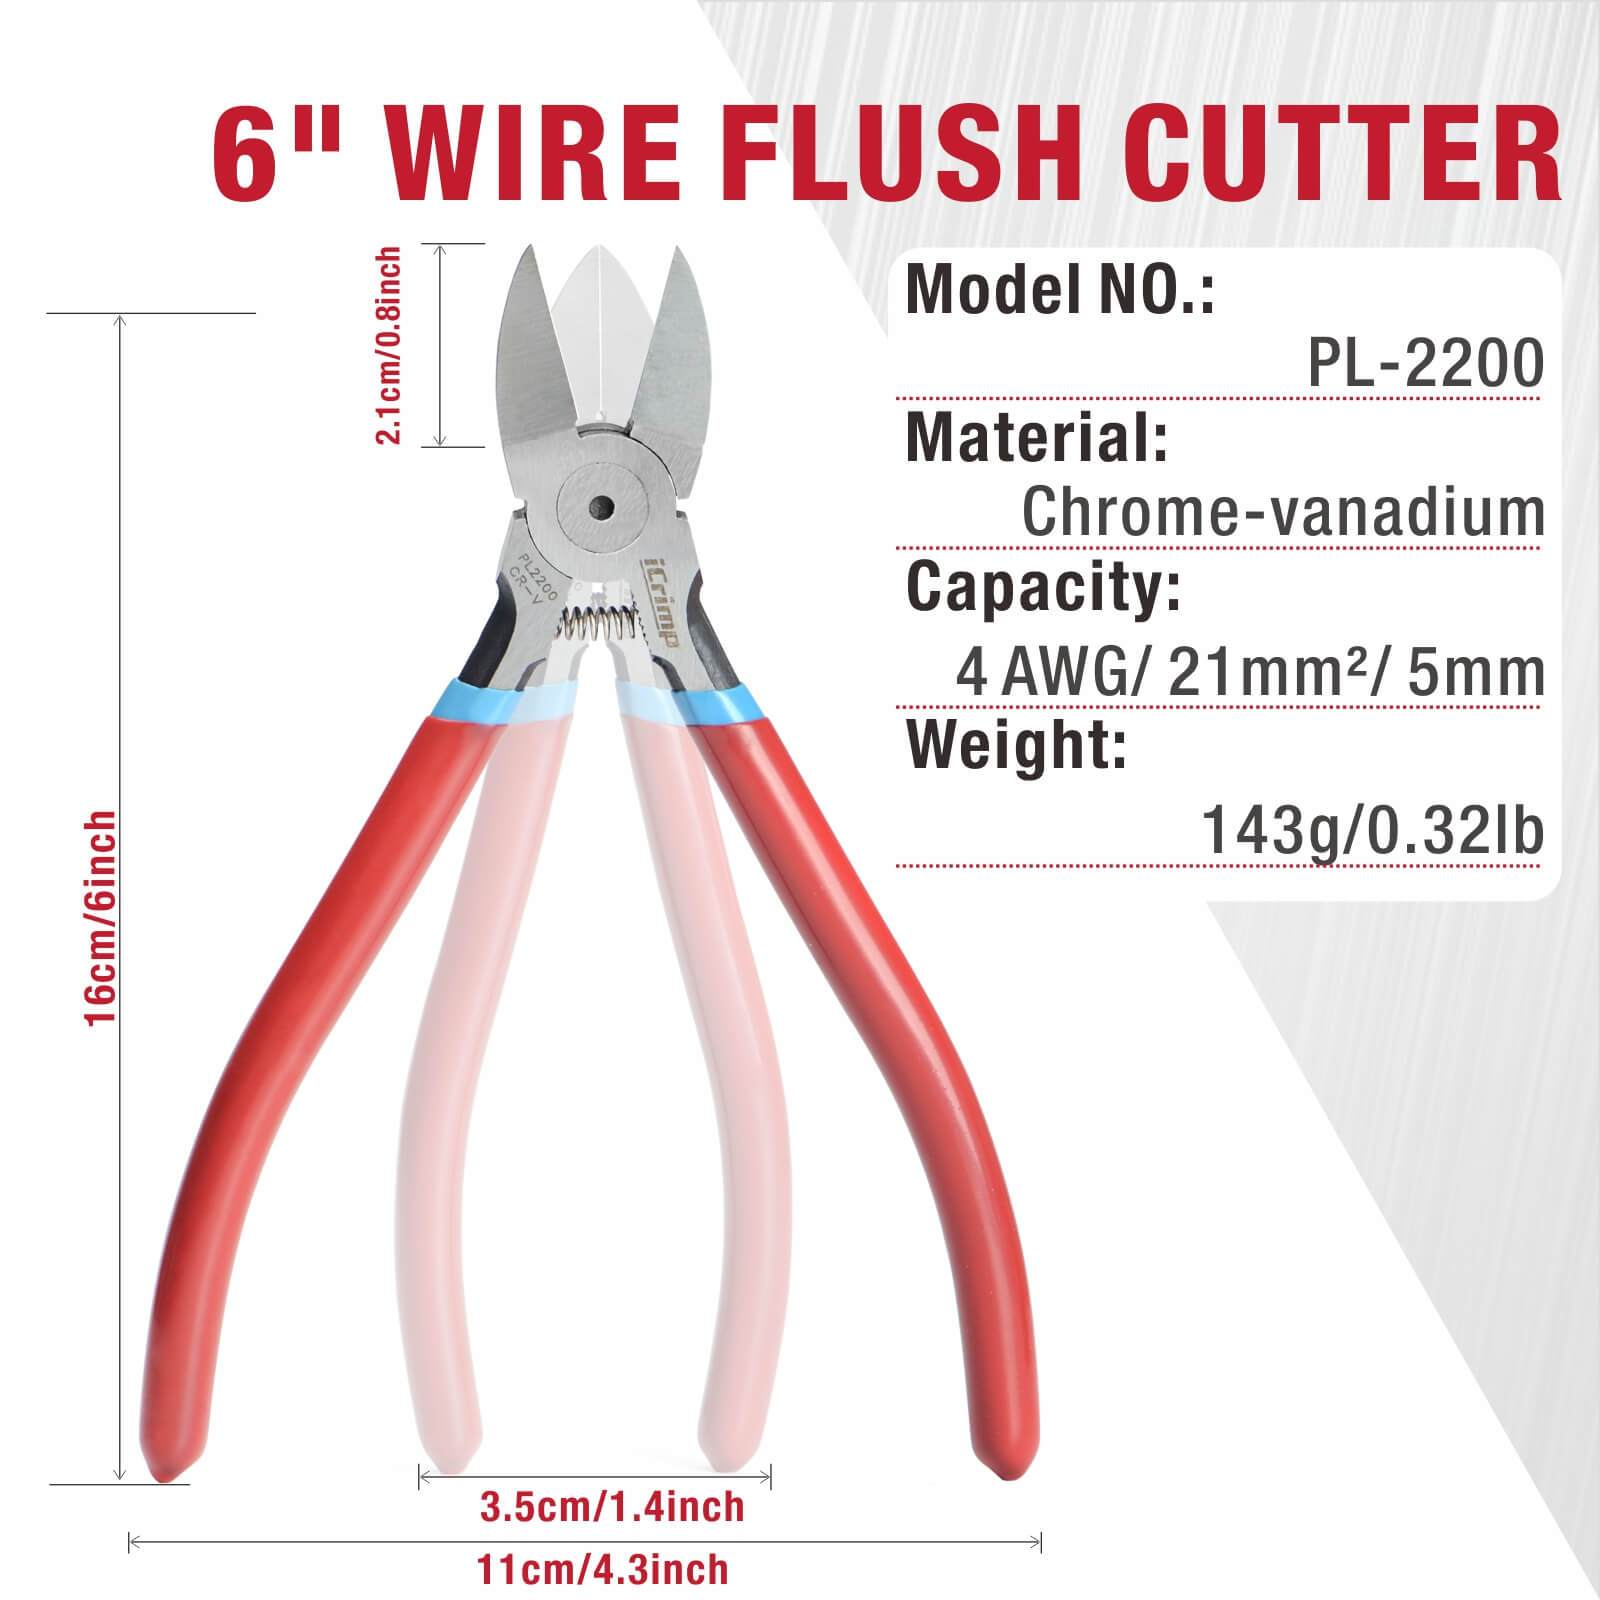 Wire Flush Cutter, Precision Side Cutting Plier for Cutting Electronics, Wires, Soft Copper, Zip Ties-6 inch